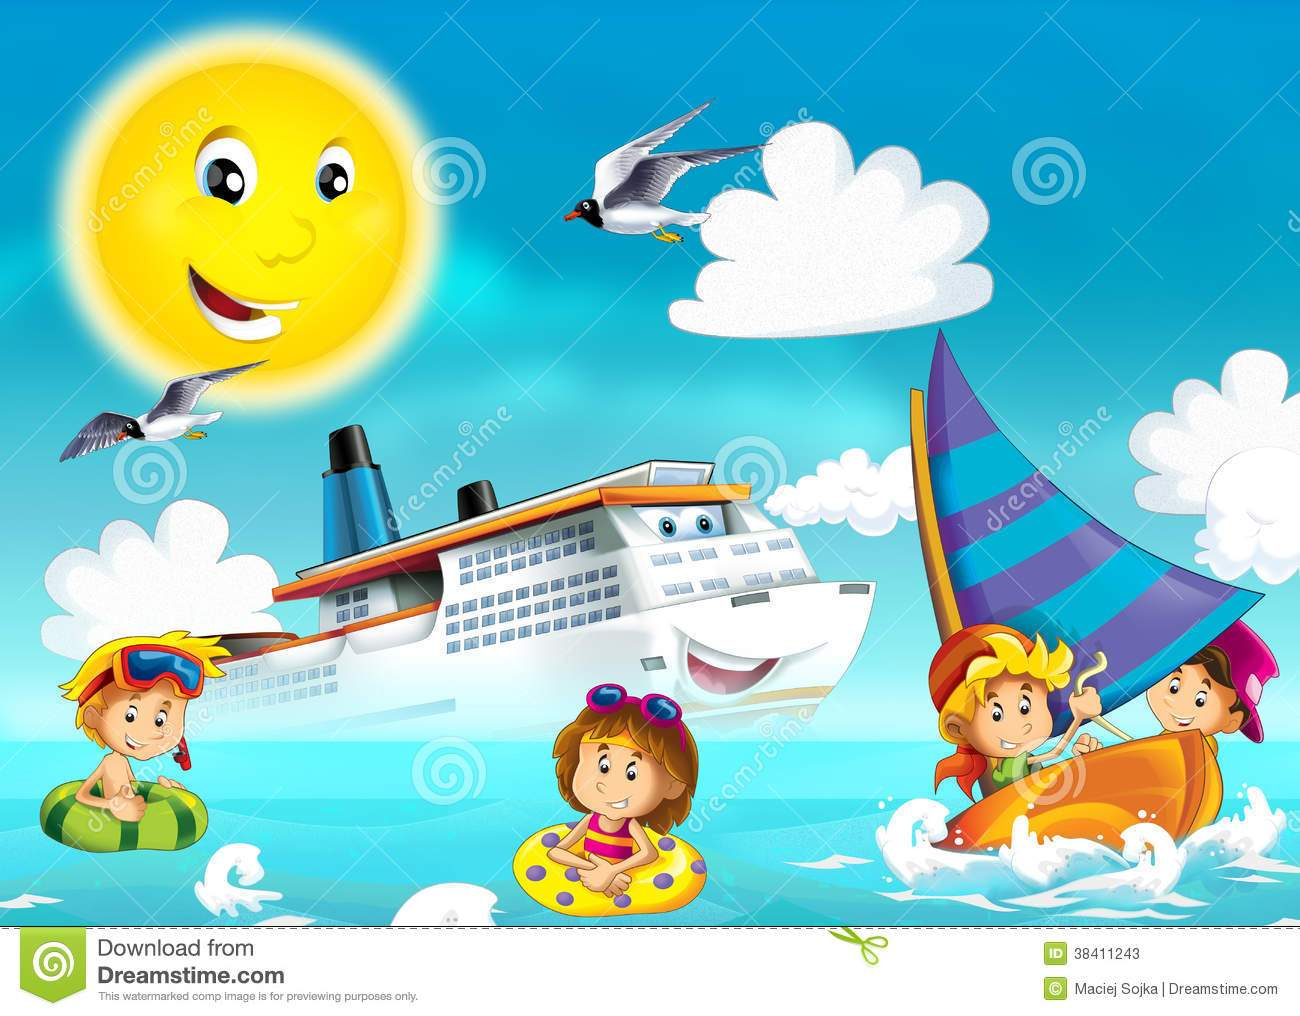 Children playing at the beach clipart 8 » Clipart Portal.